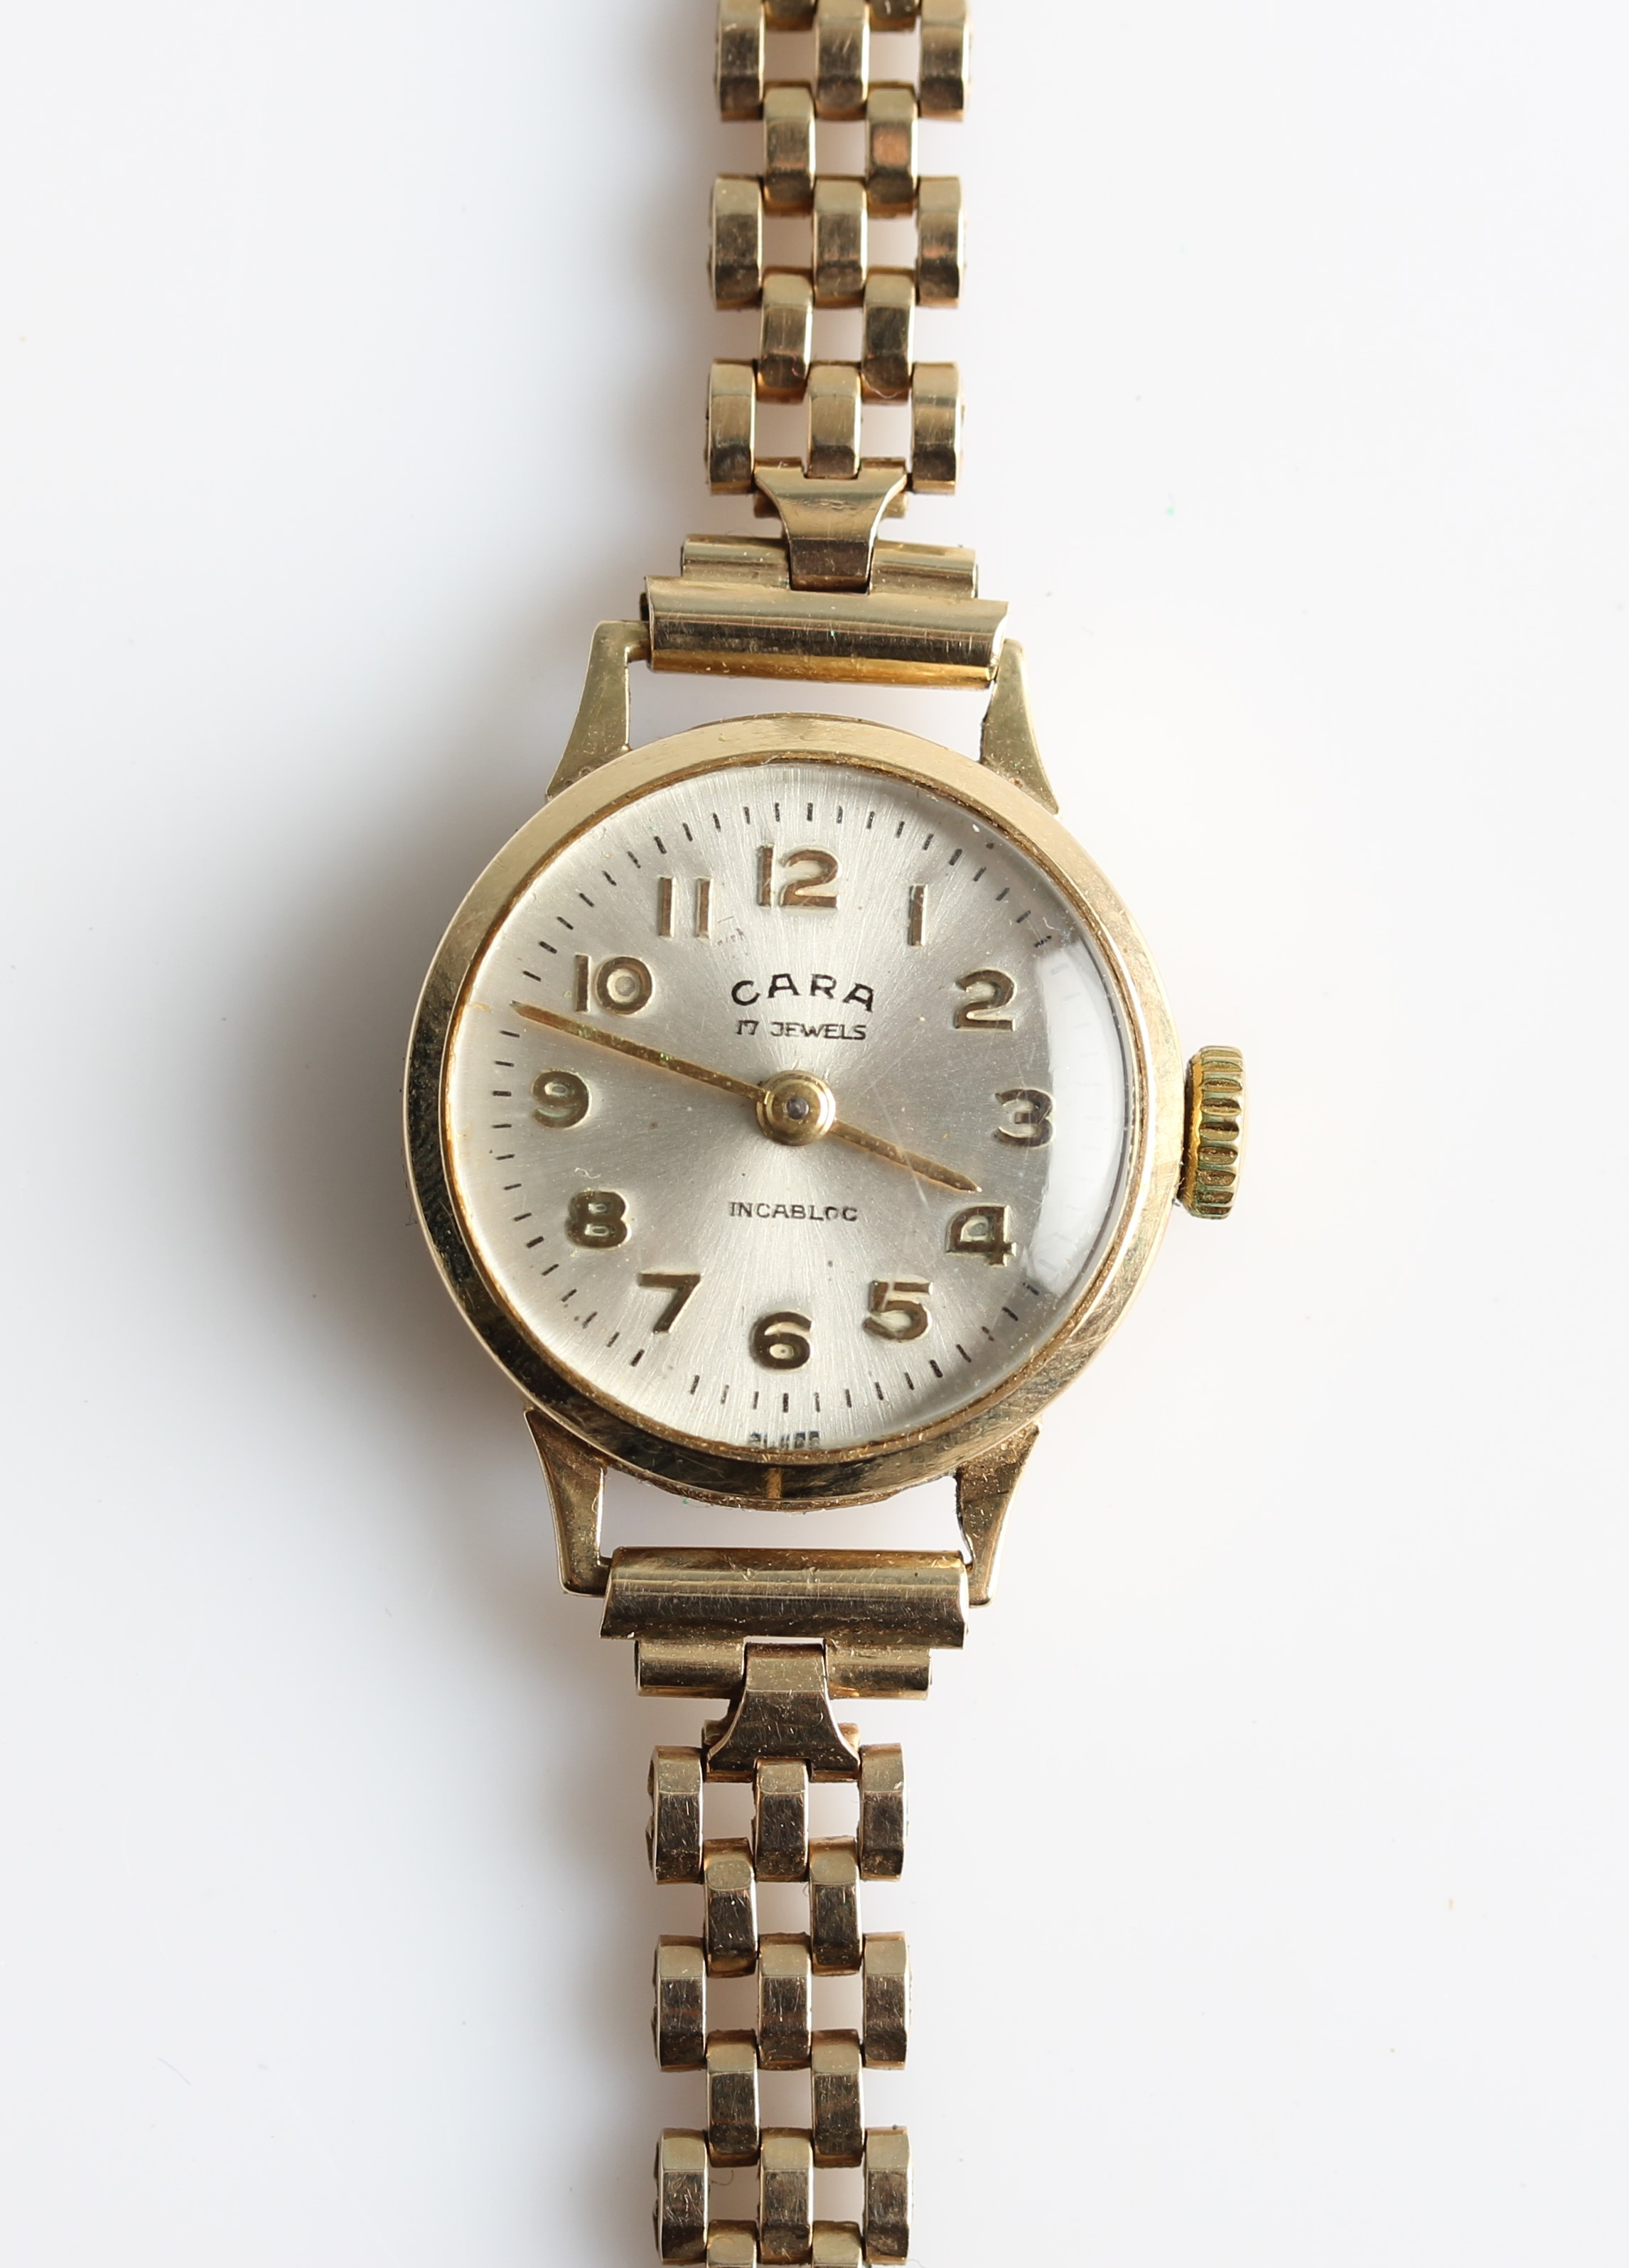 Lot 31 - A ladies Cara wrist watch, the silver-tone dial having hourly Arabic numeral markers with a minute